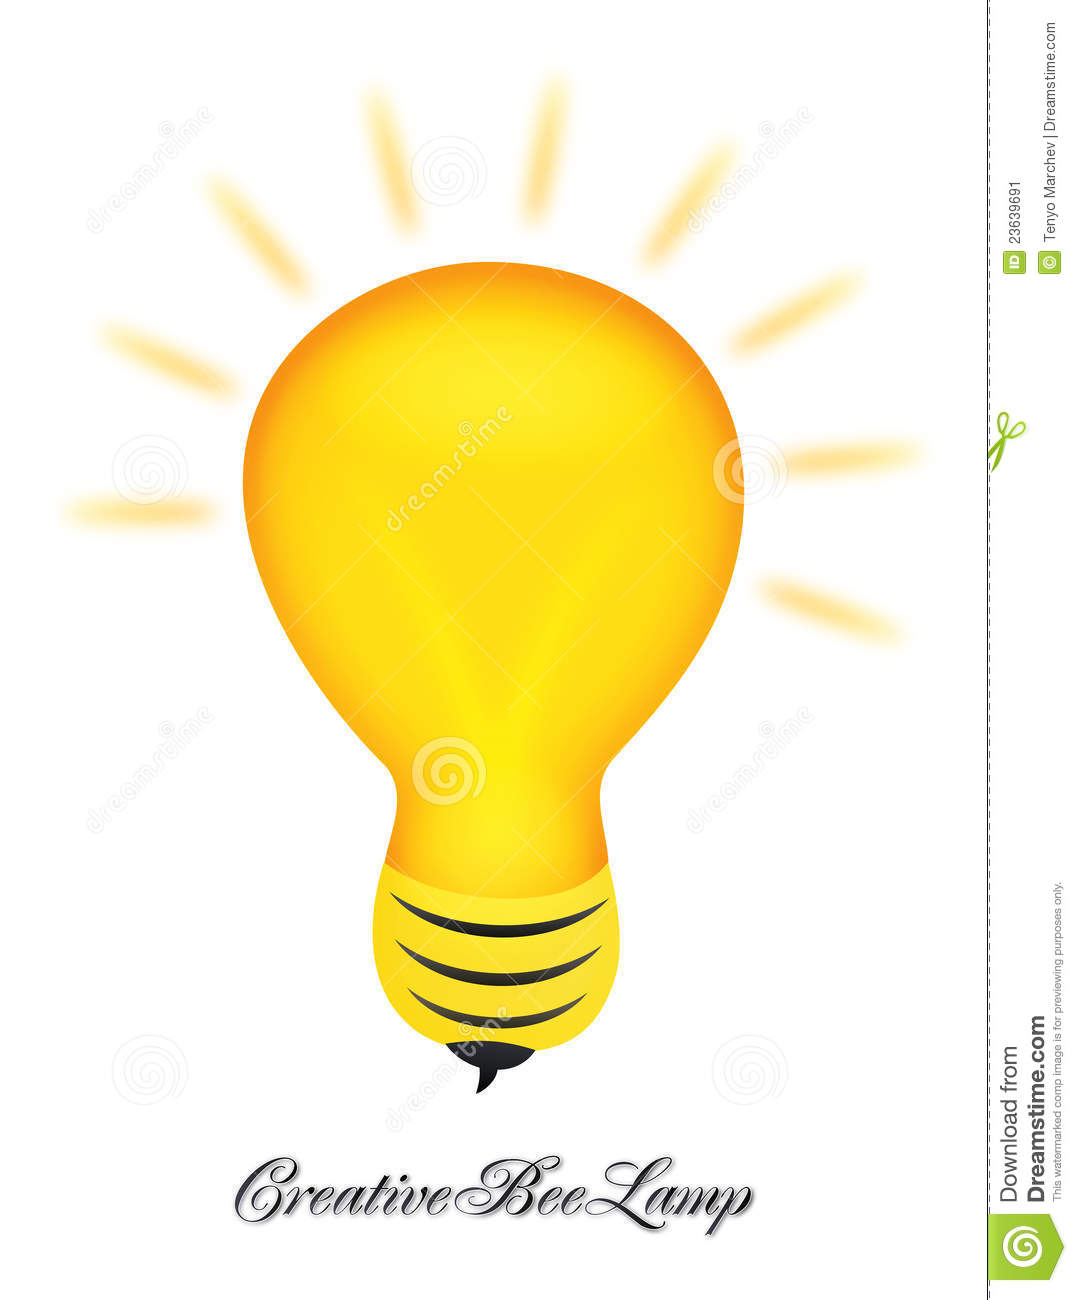 Creative Bee Lamp Logo Design Stock Vector Image 23639691